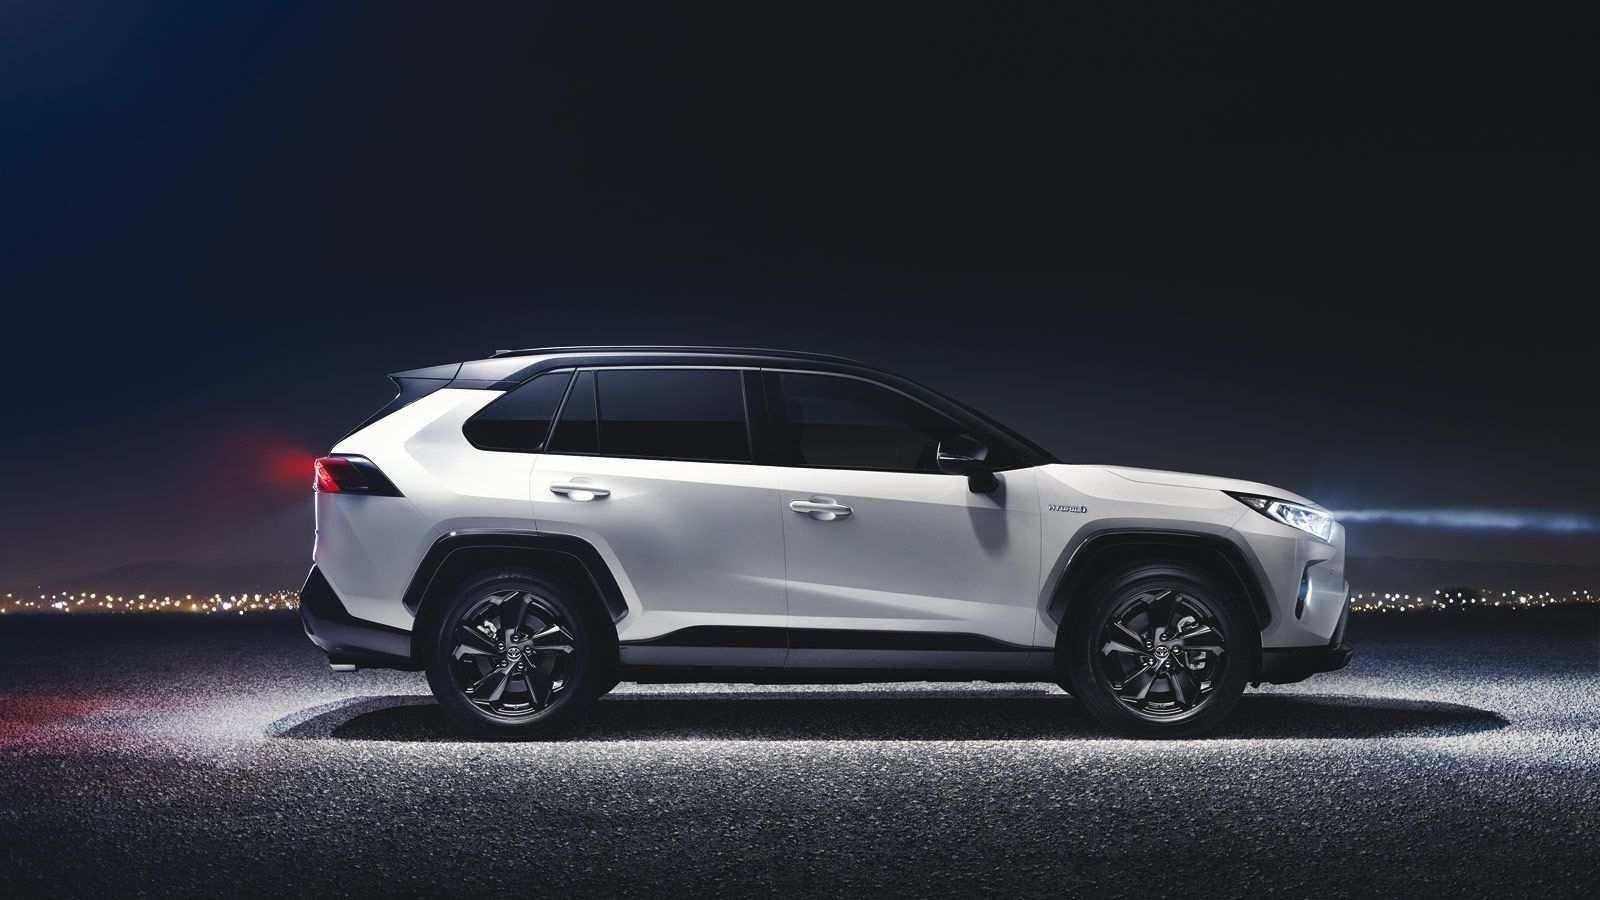 67 The 2020 Toyota Rav4 2018 Rumors with 2020 Toyota Rav4 2018